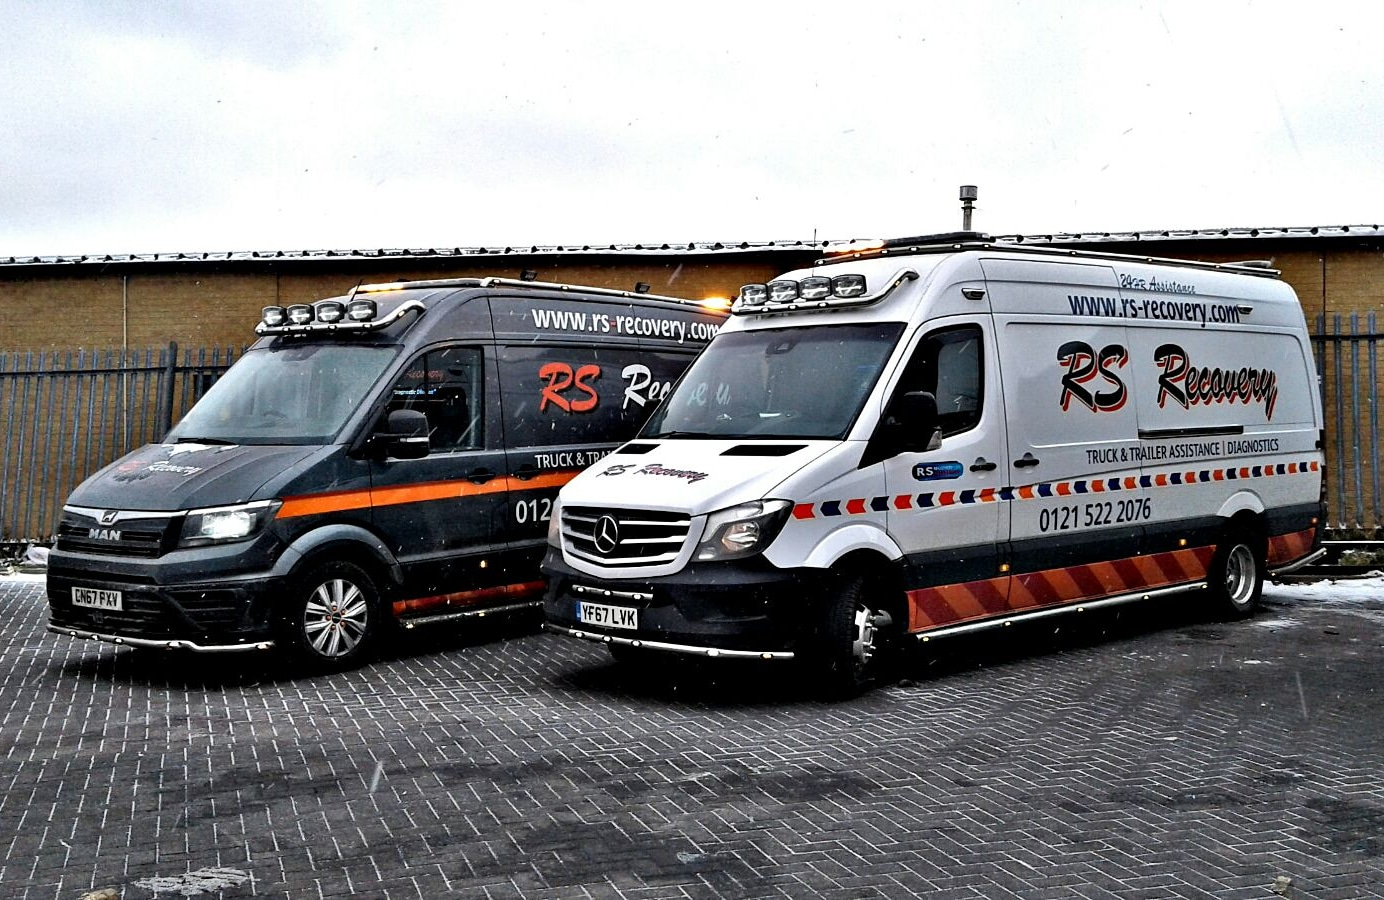 Service vans join the fleet